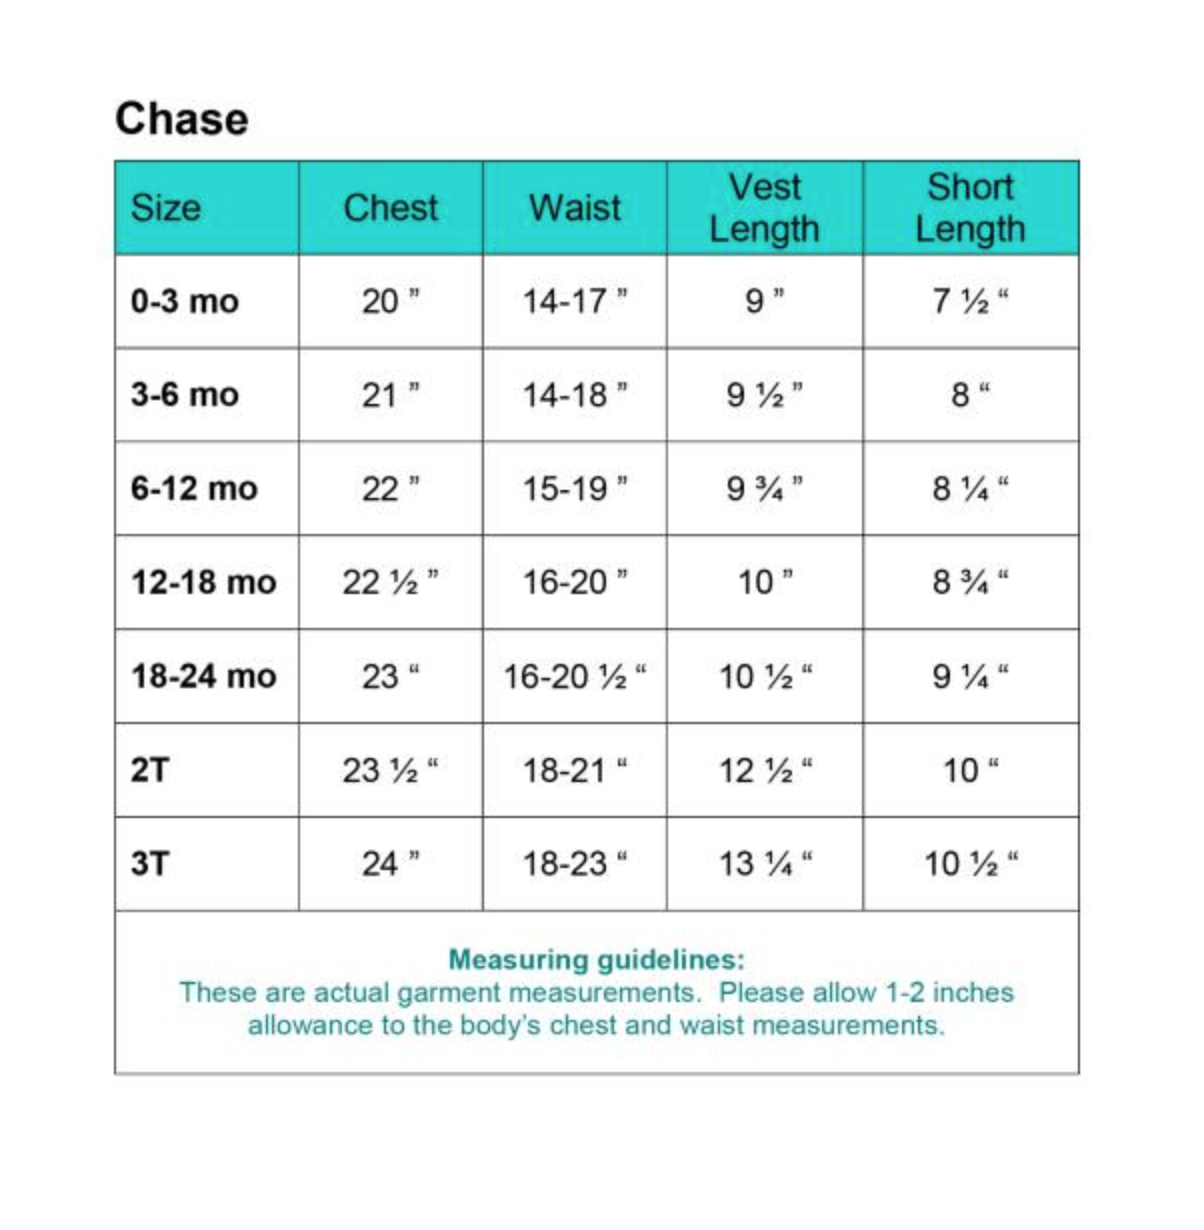 sizing-chart-chase.png